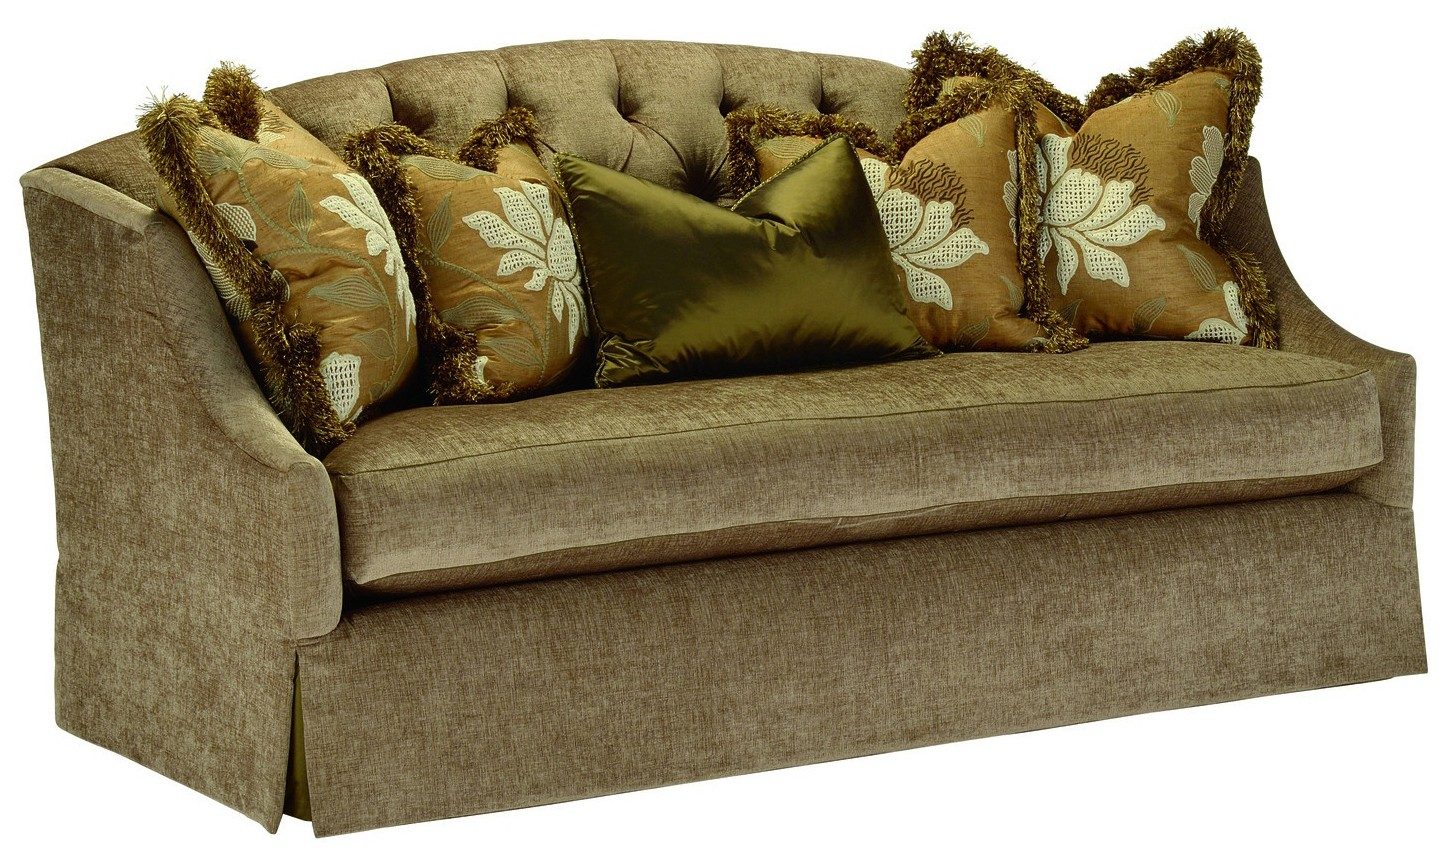 Retro Sofa With Tufted Back